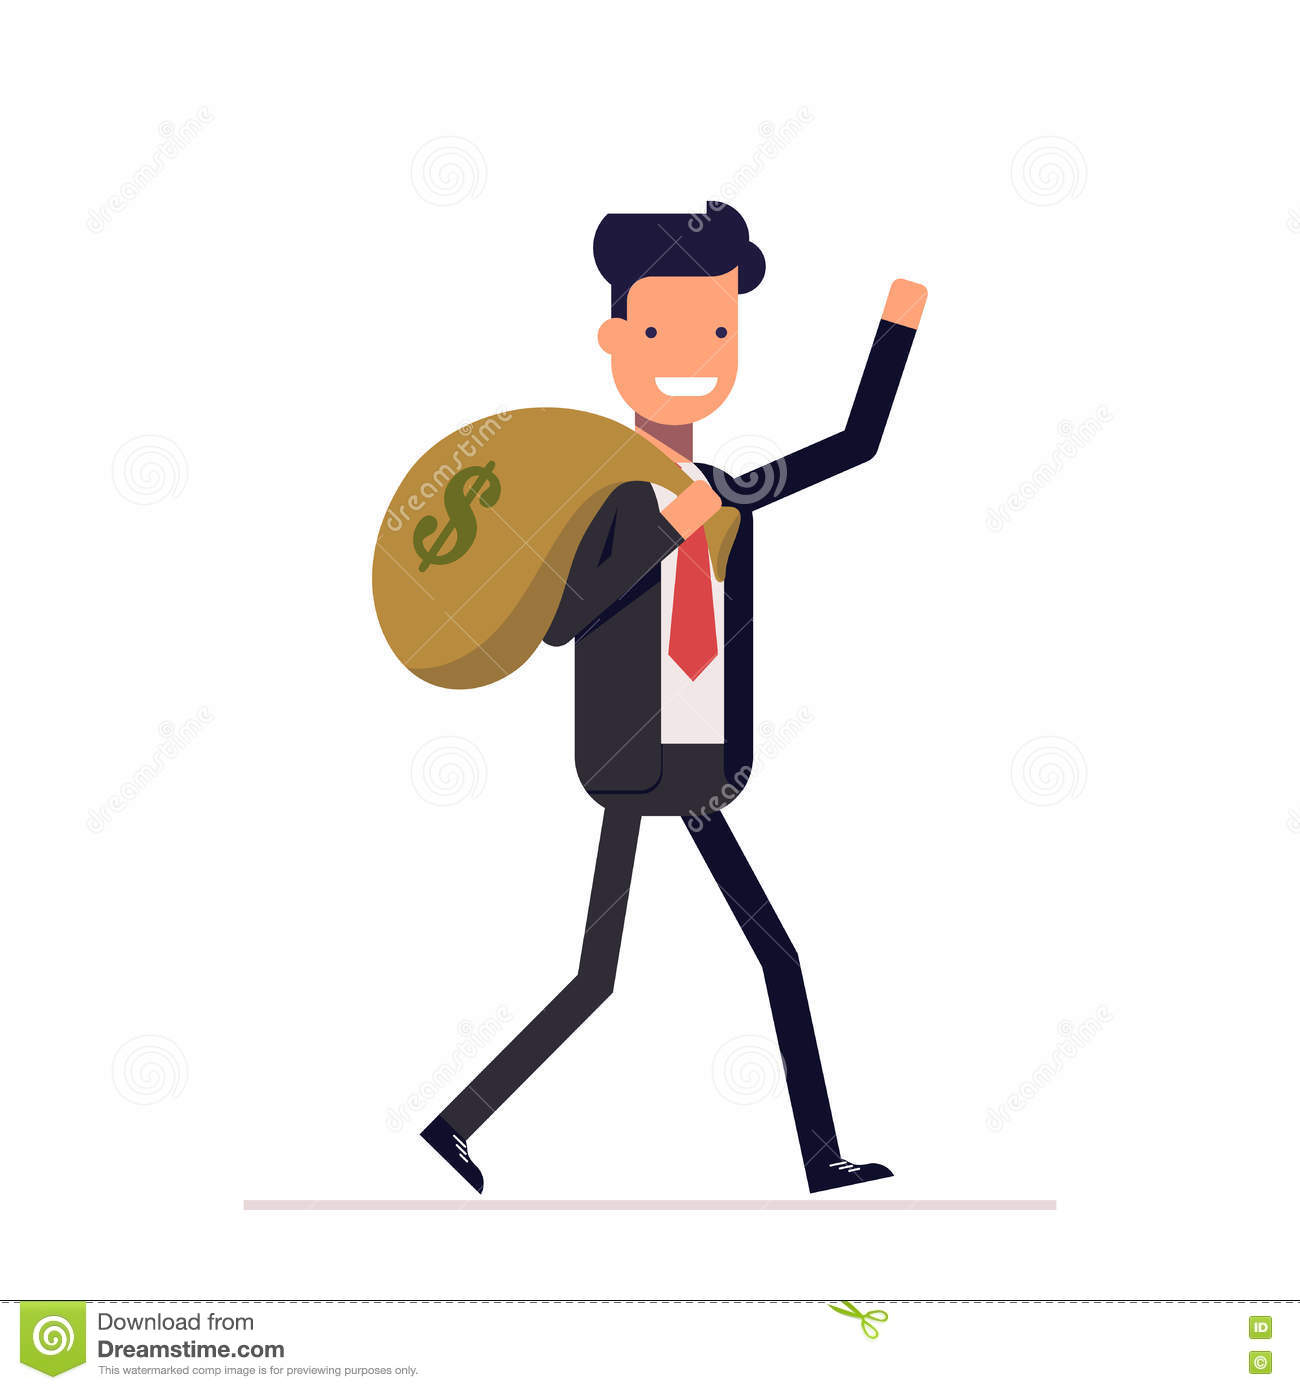 businessman-manager-comes-bag-money-happ